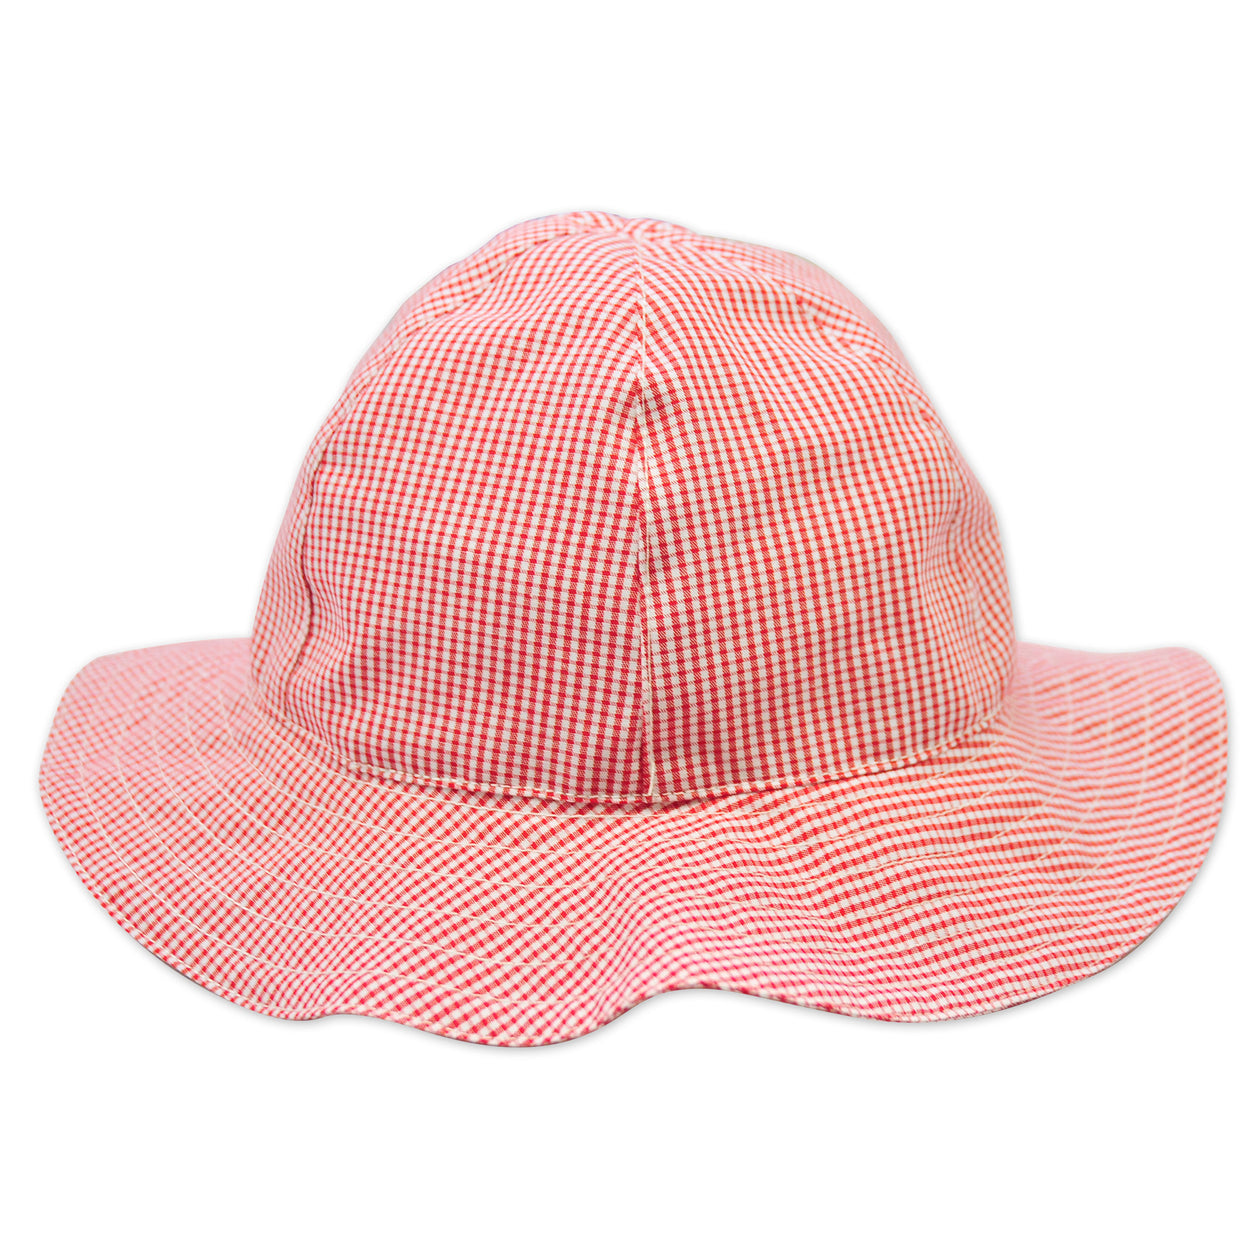 baby sun hat red mini check